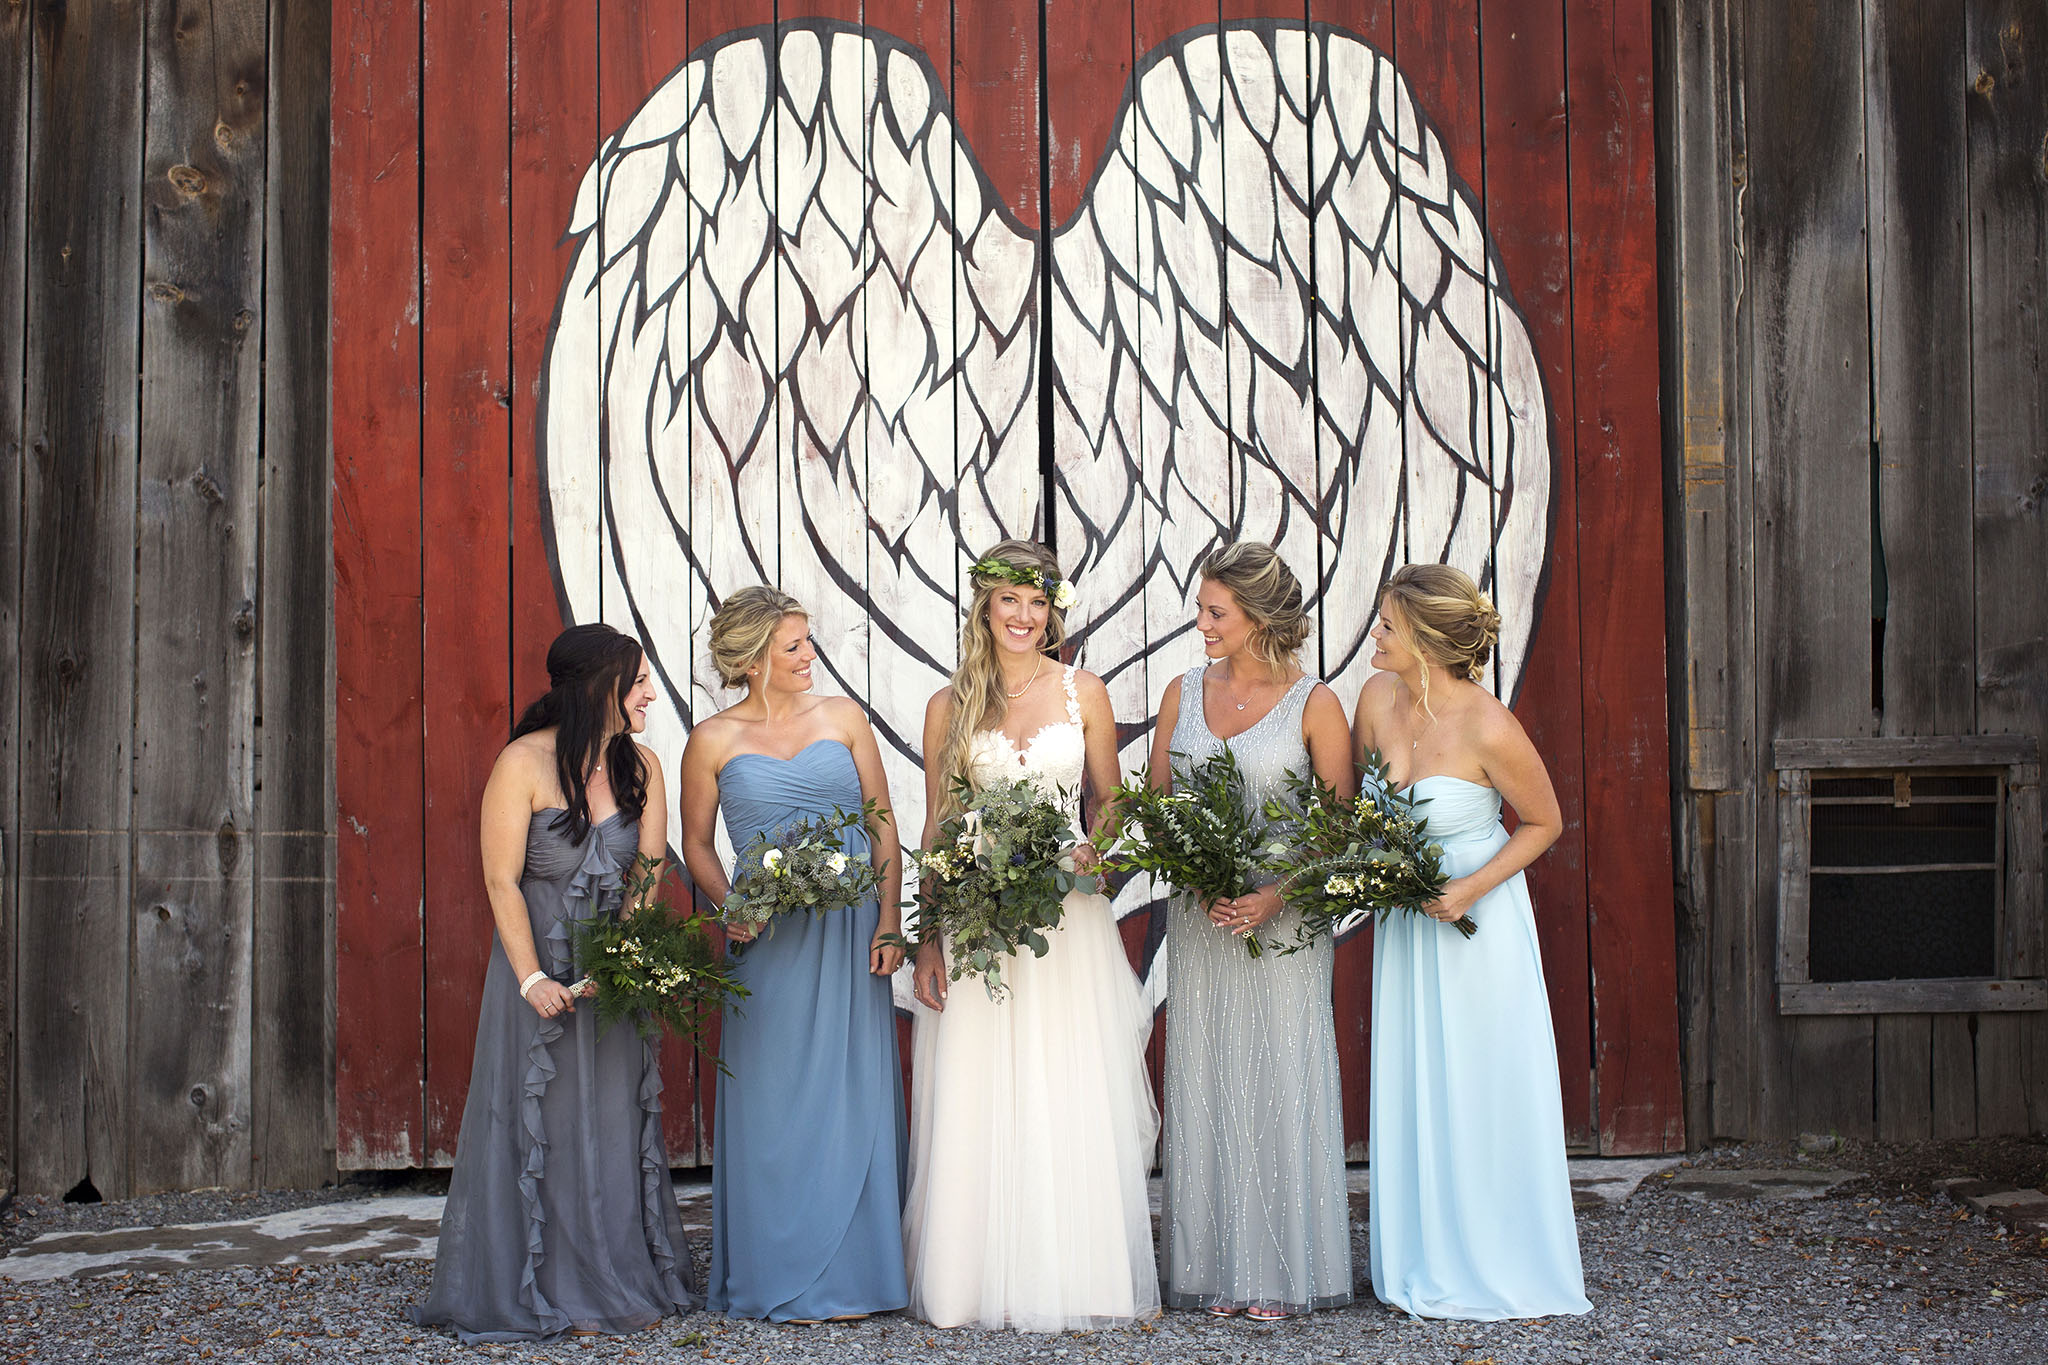 One bride with 4 bridesmaids , all holding flowers beneath the wings at Century Barn.